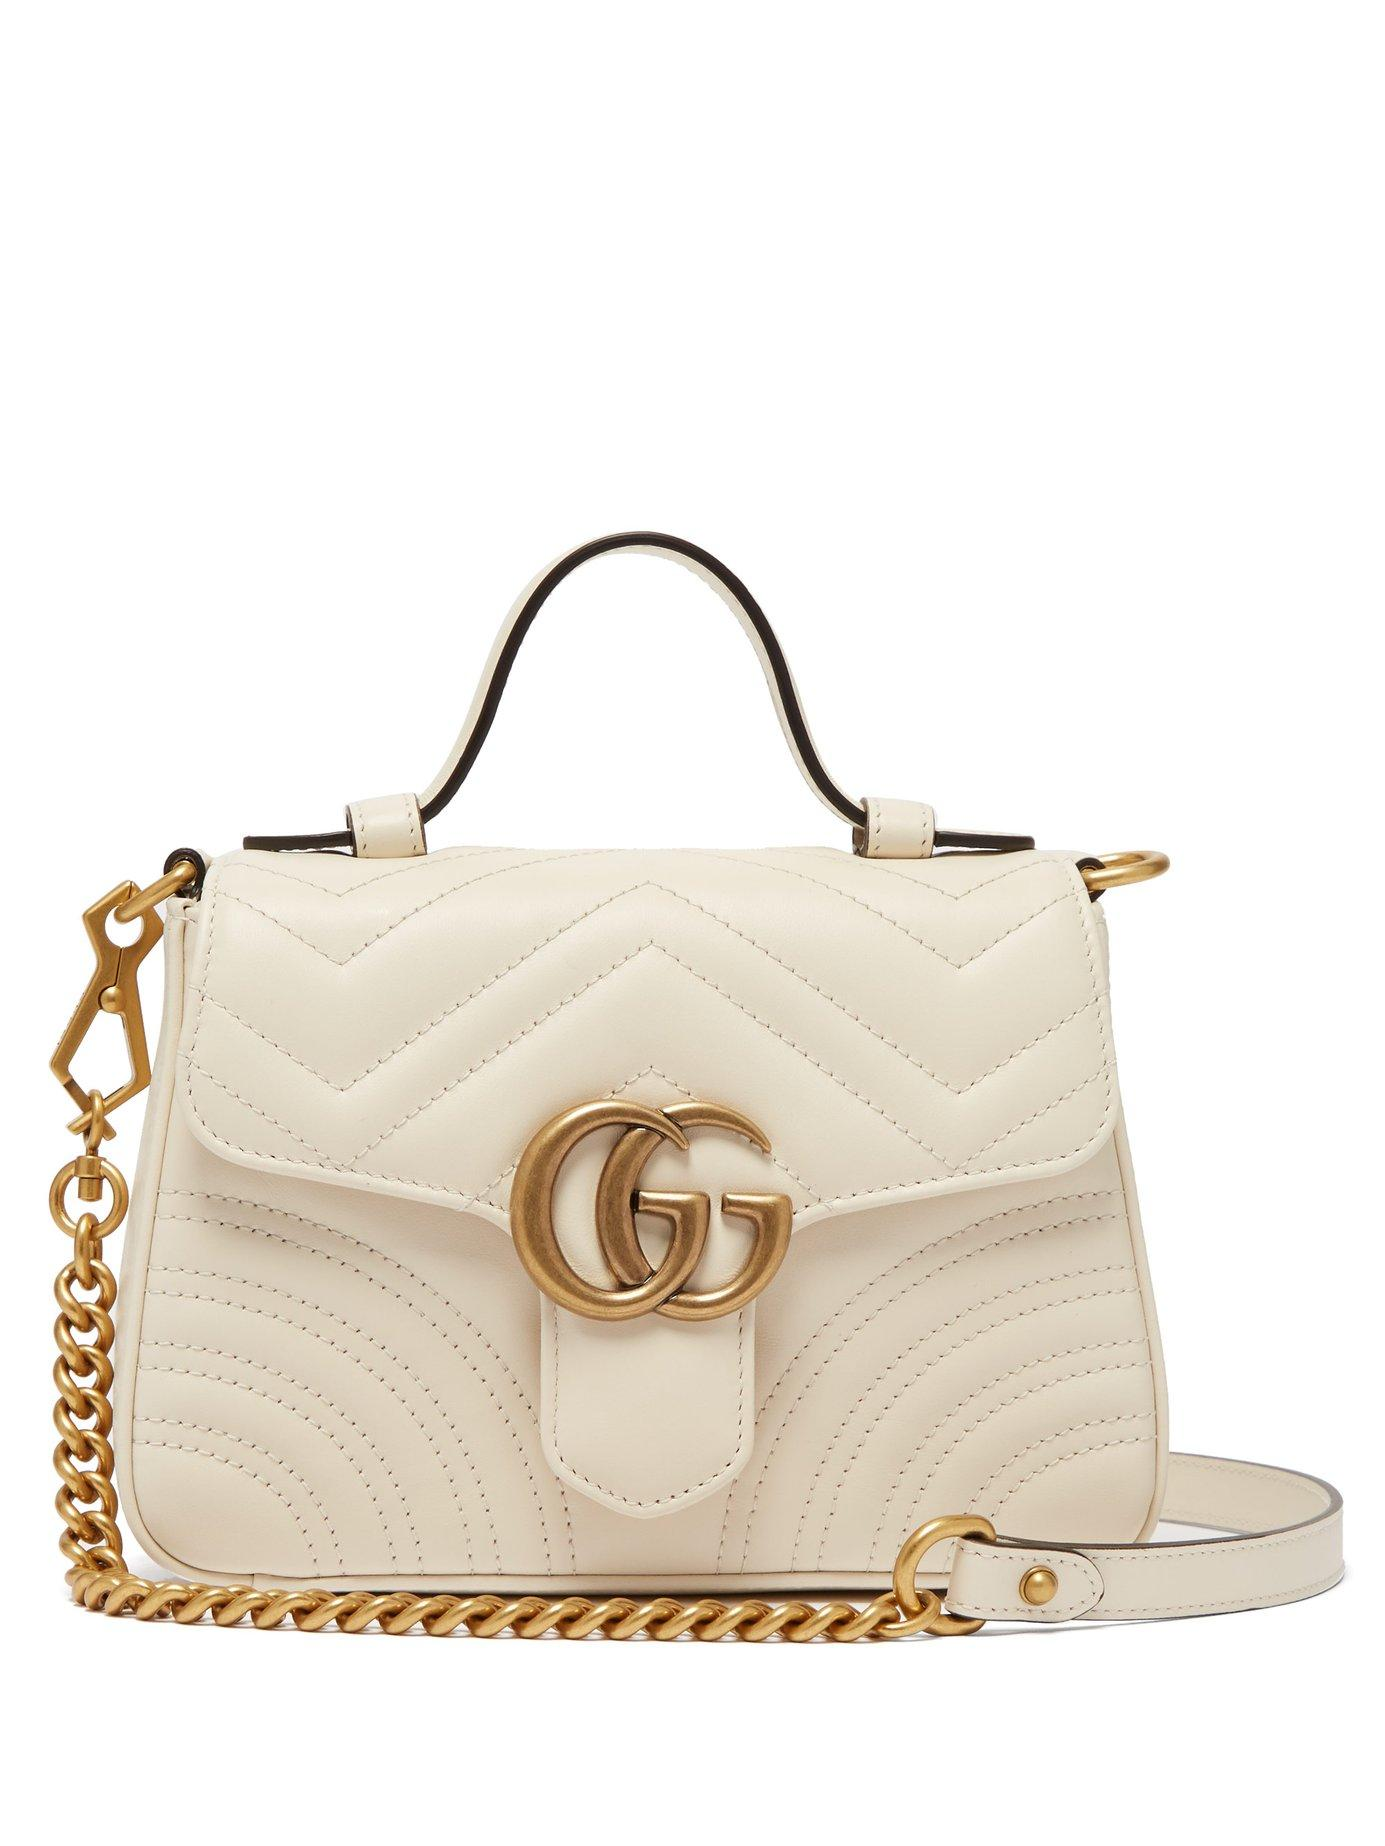 dd0a6c5c6 ... Gucci White Gg Marmont Quilted Leather Cross Body Bag · Visit  MATCHESFASHION.COM. Tap to visit site